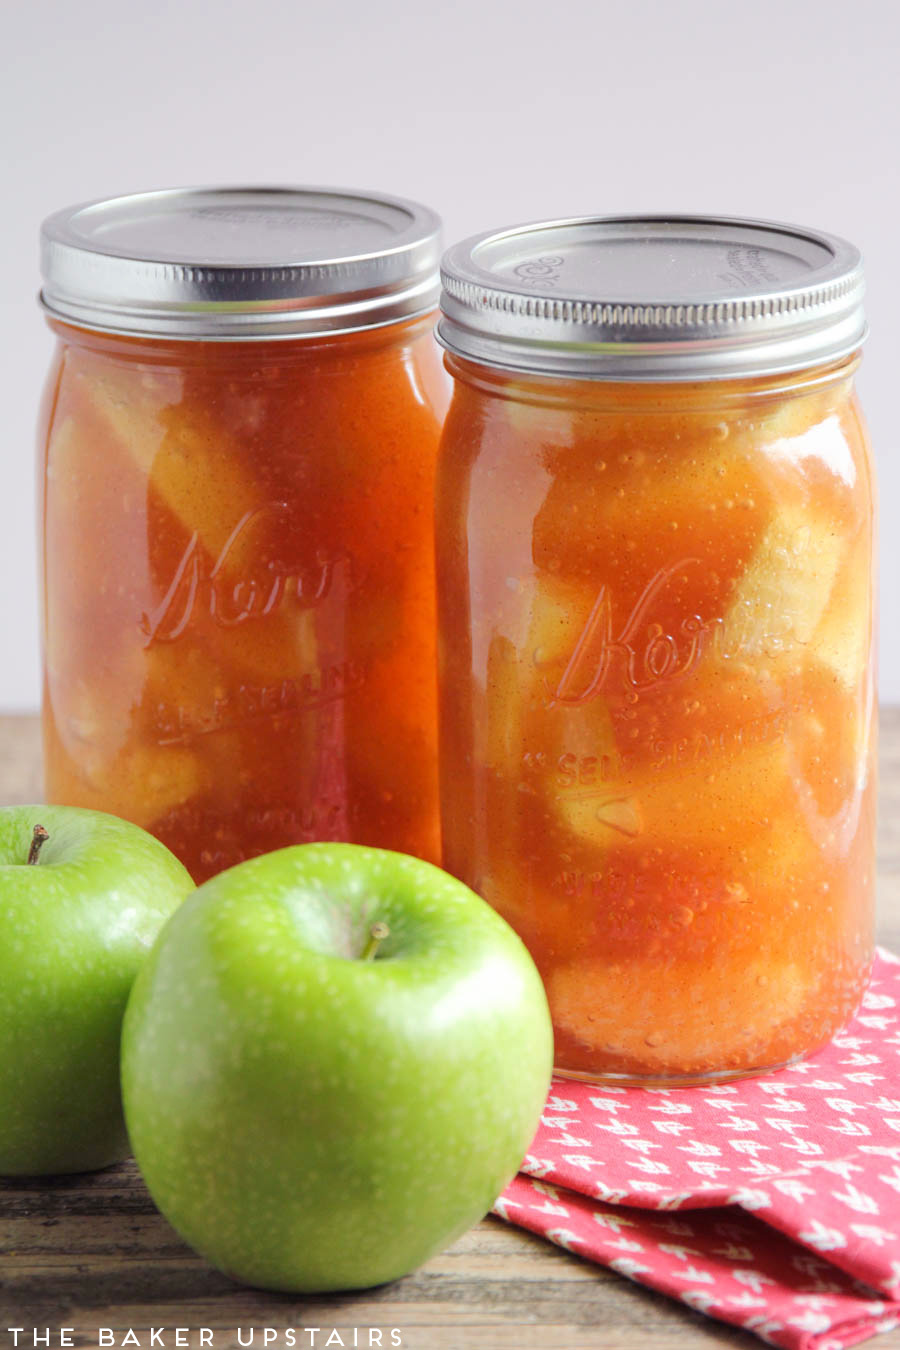 Homemade apple pie filling! So delicious and flavorful, and makes the best pie ever!